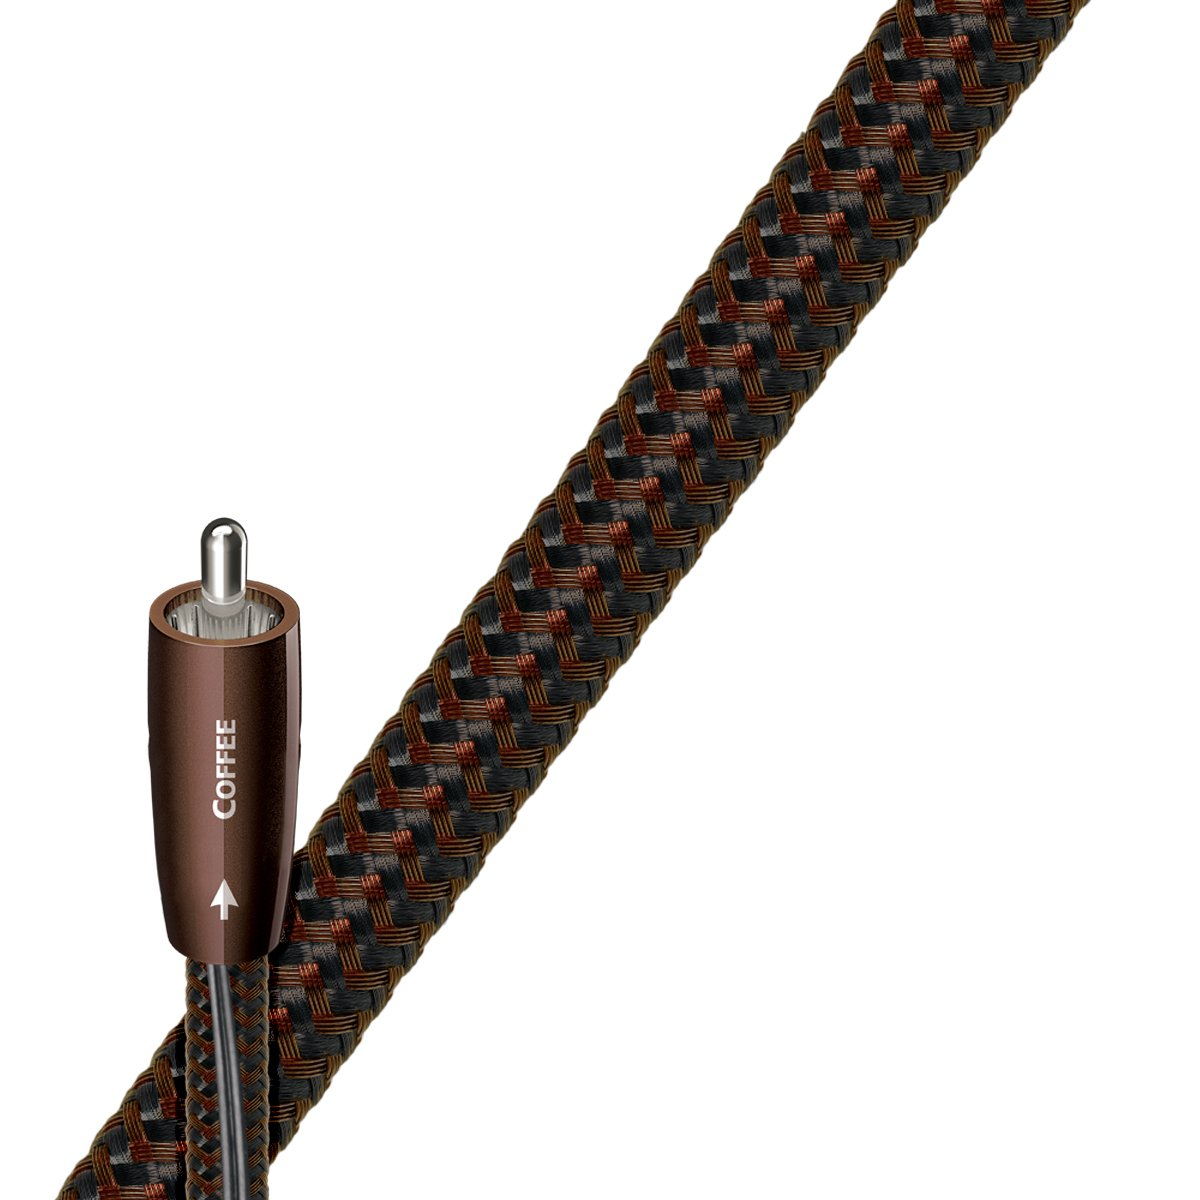 AudioQuest Digital Coax Coffee Cable 2.0m by AudioQuest (Image #1)